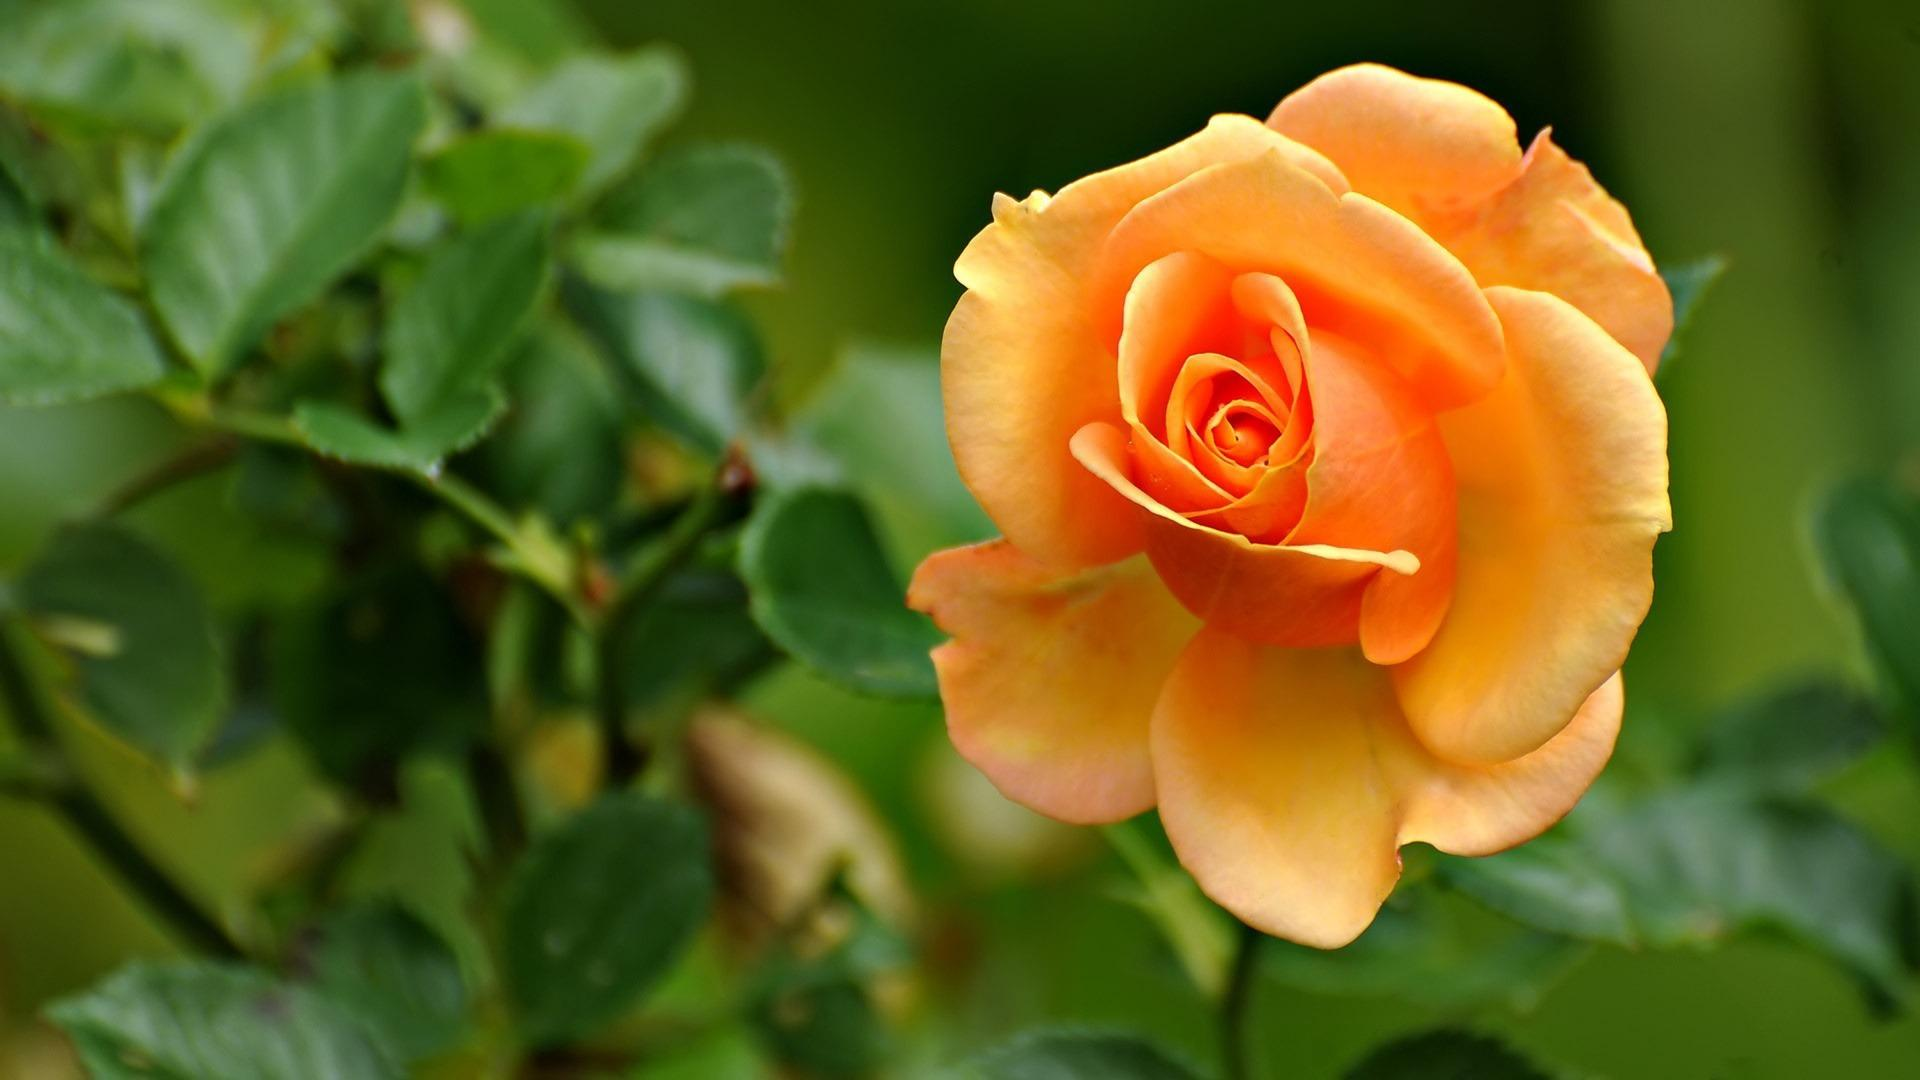 Yellow Roses Wallpapers Rose Flower Images Pictures And 1920x1080